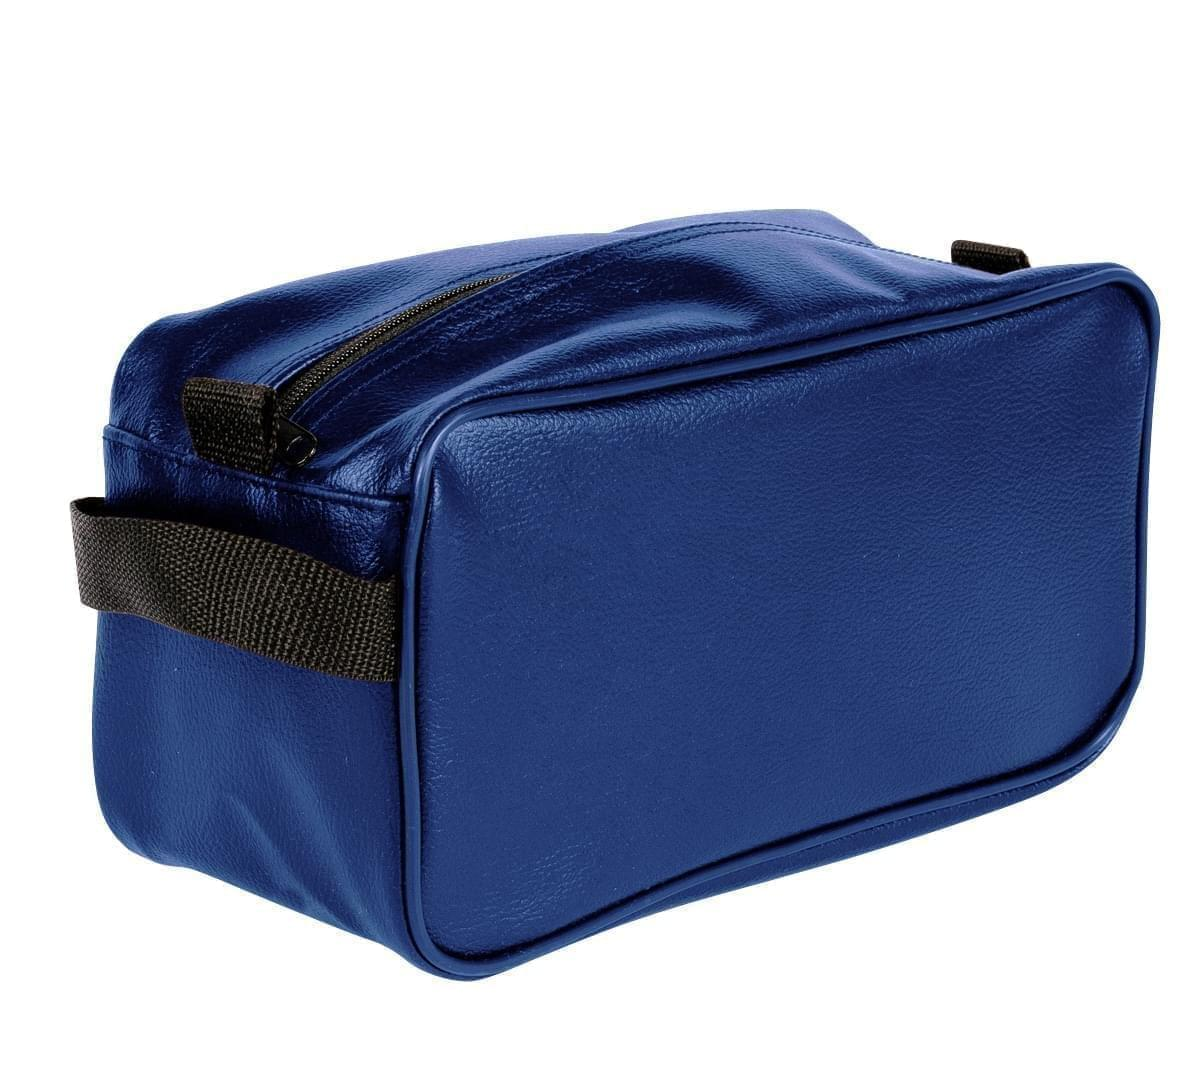 USA Made Cosmetic & Toiletry Cases, Royal Blue-Black, 3000996-A0R